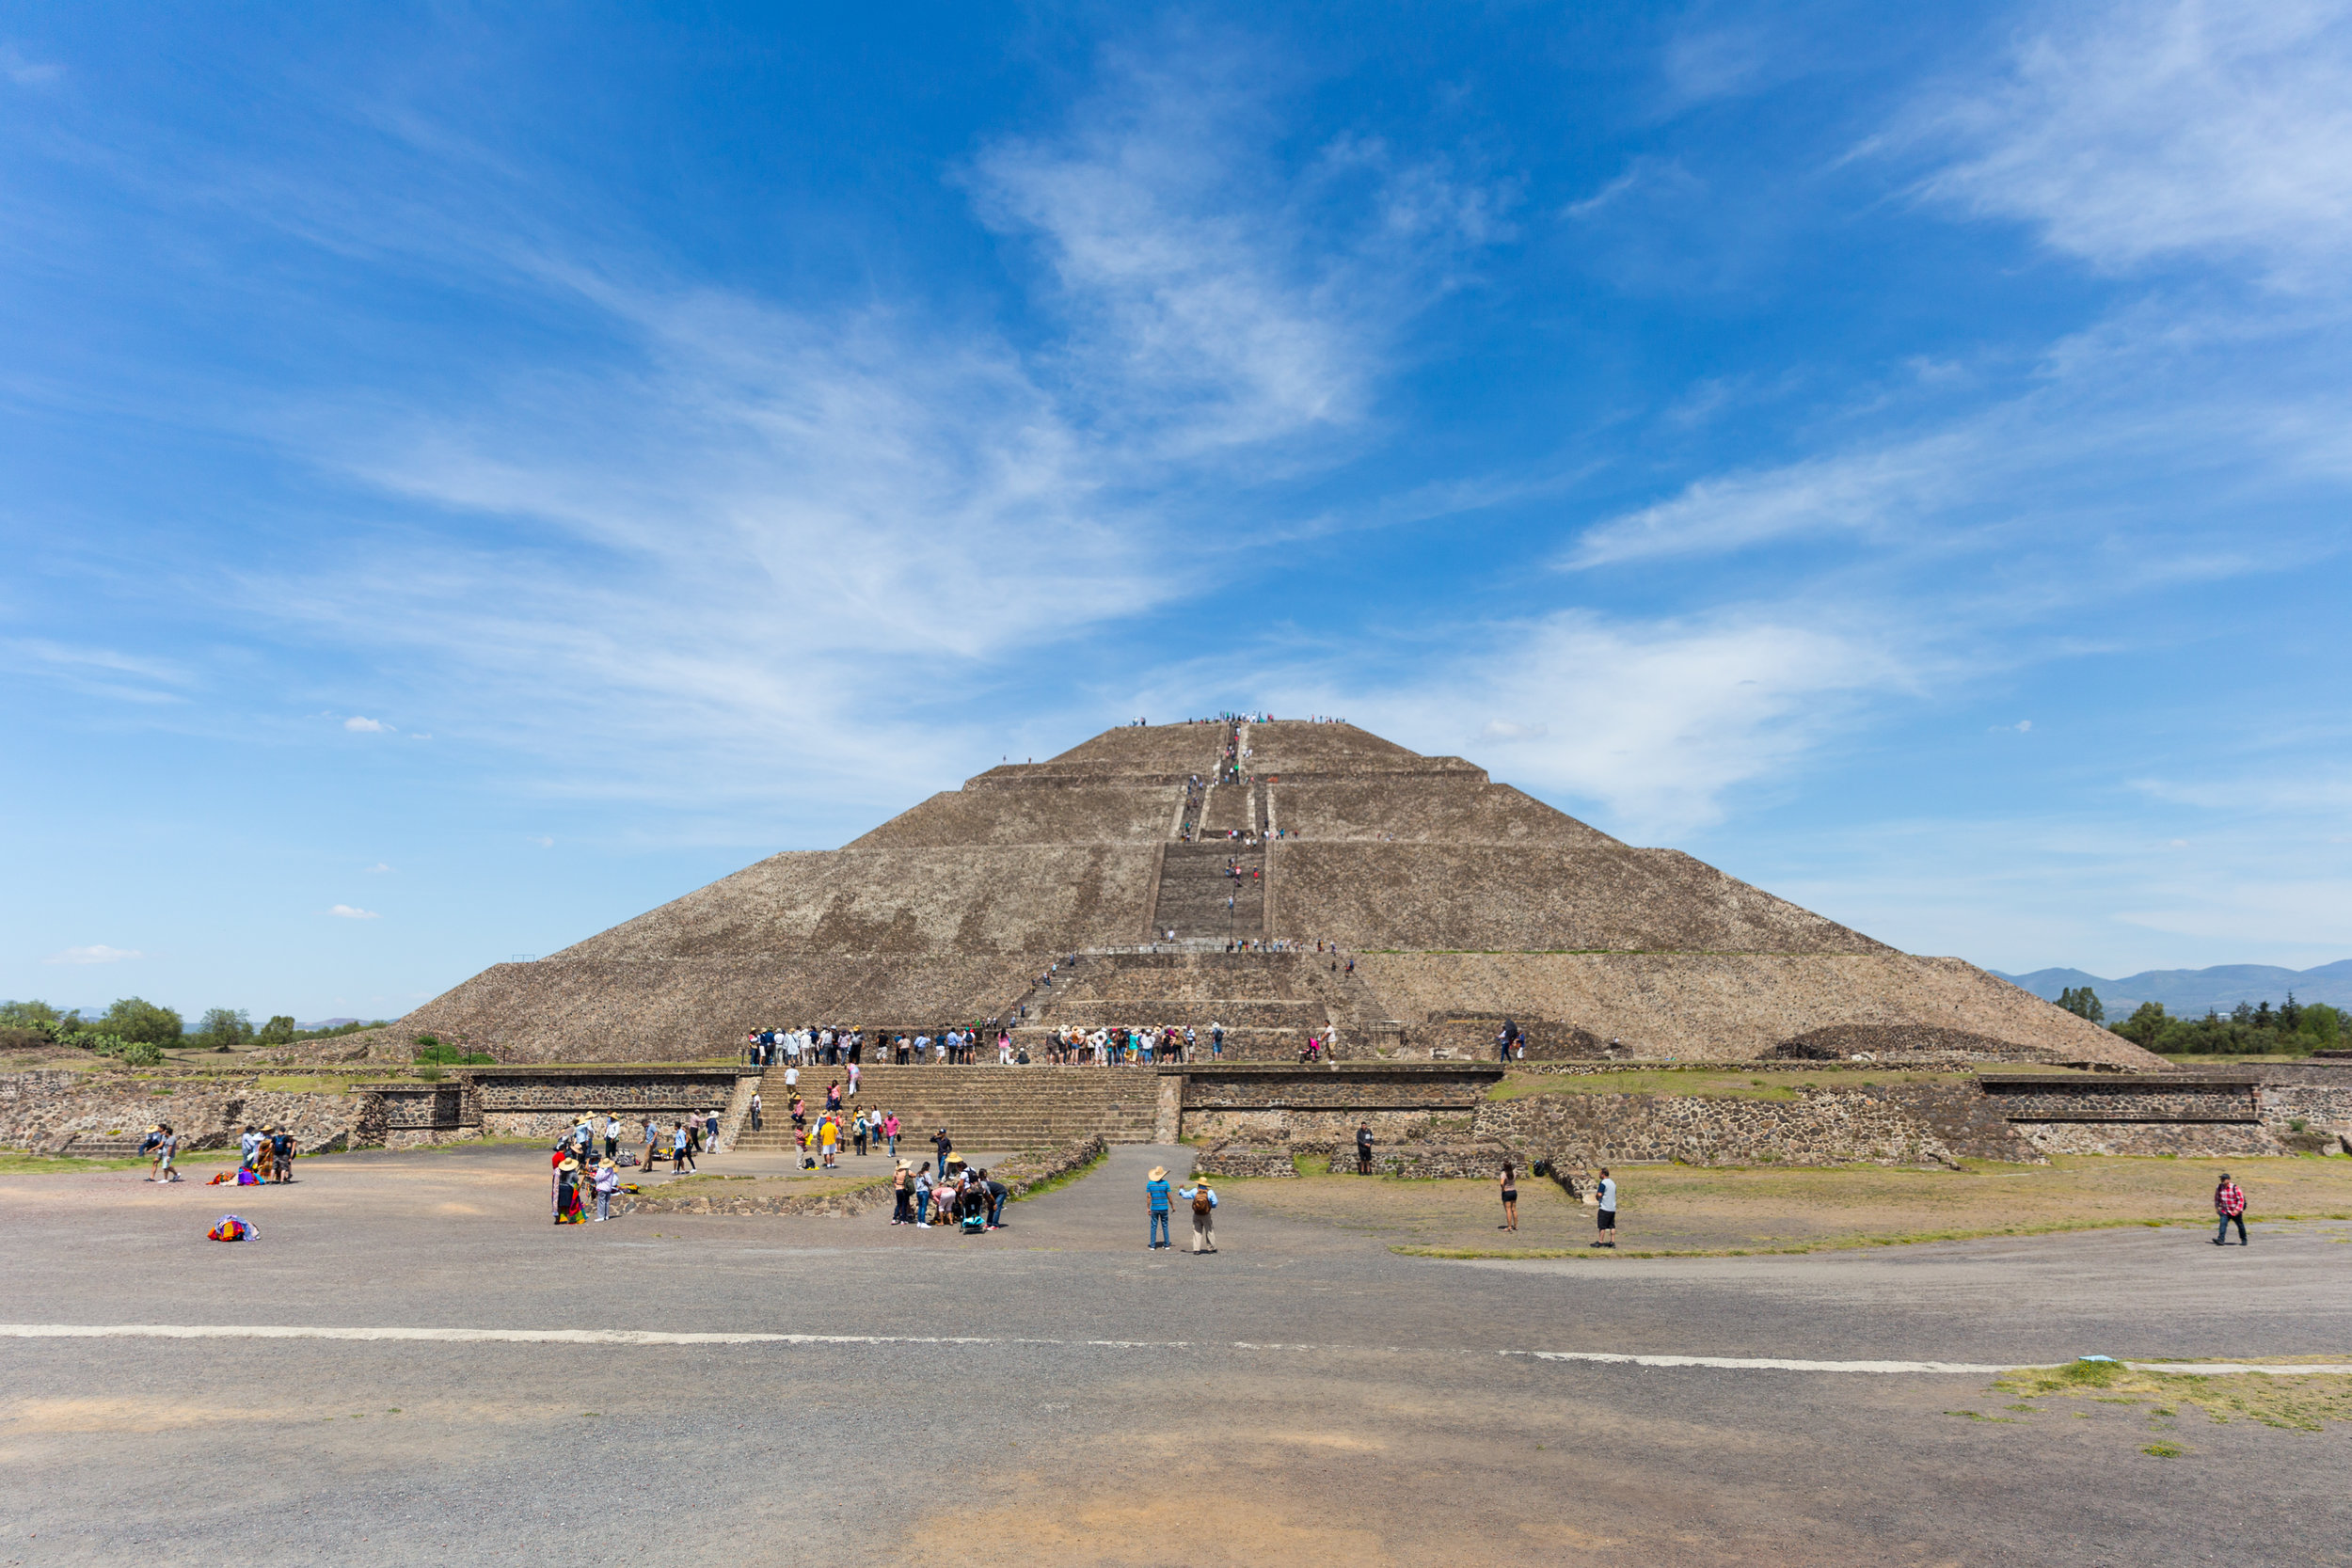 Mexico City Teotihuacan-9.jpg